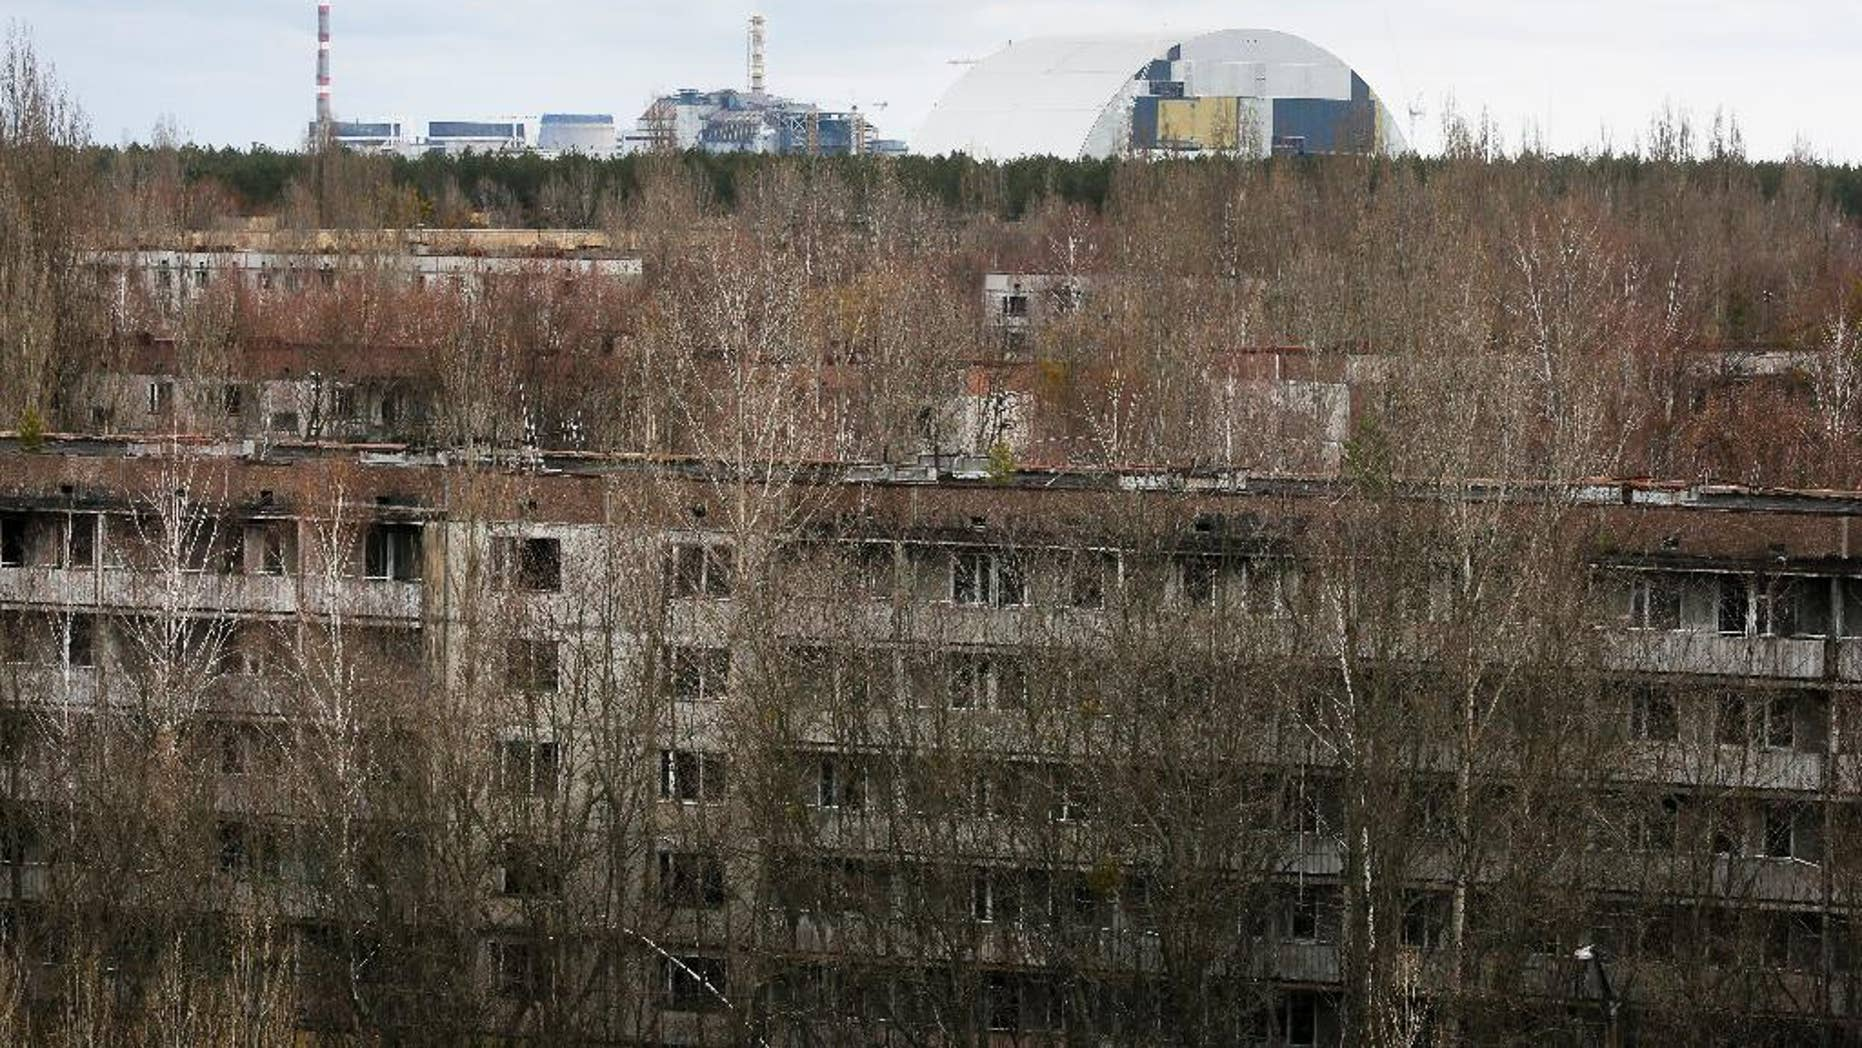 March 23, 2016: Abandoned apartment buildings in the town of Pripyat near Chernobyl, Ukraine.